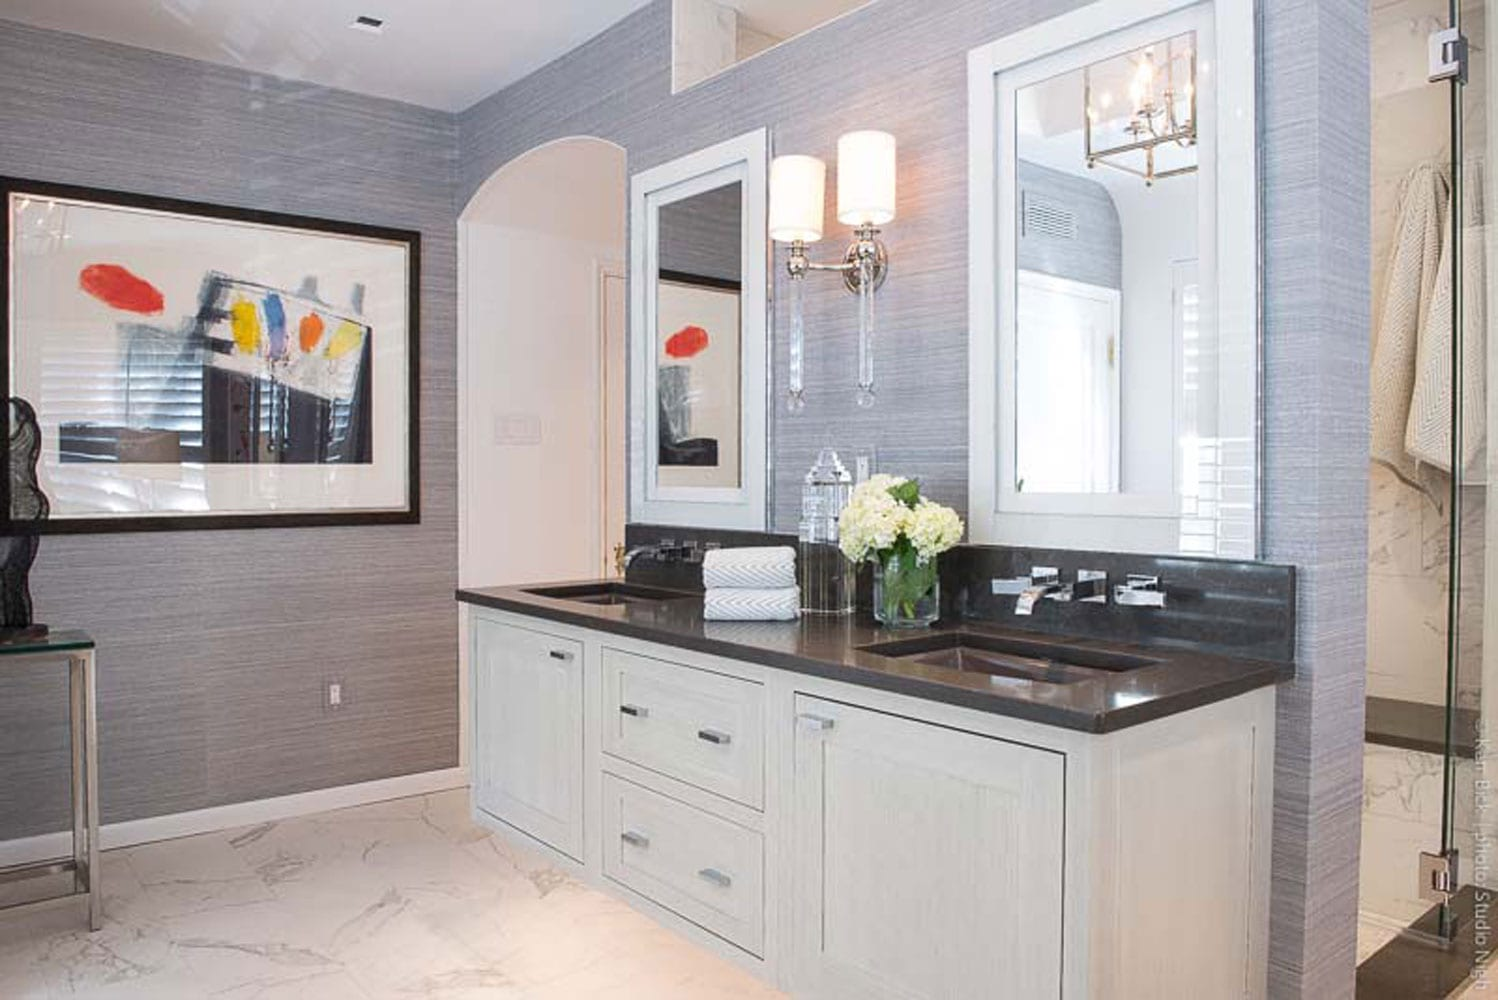 bathroom remodel white cabinets, dark countertops, contemporary